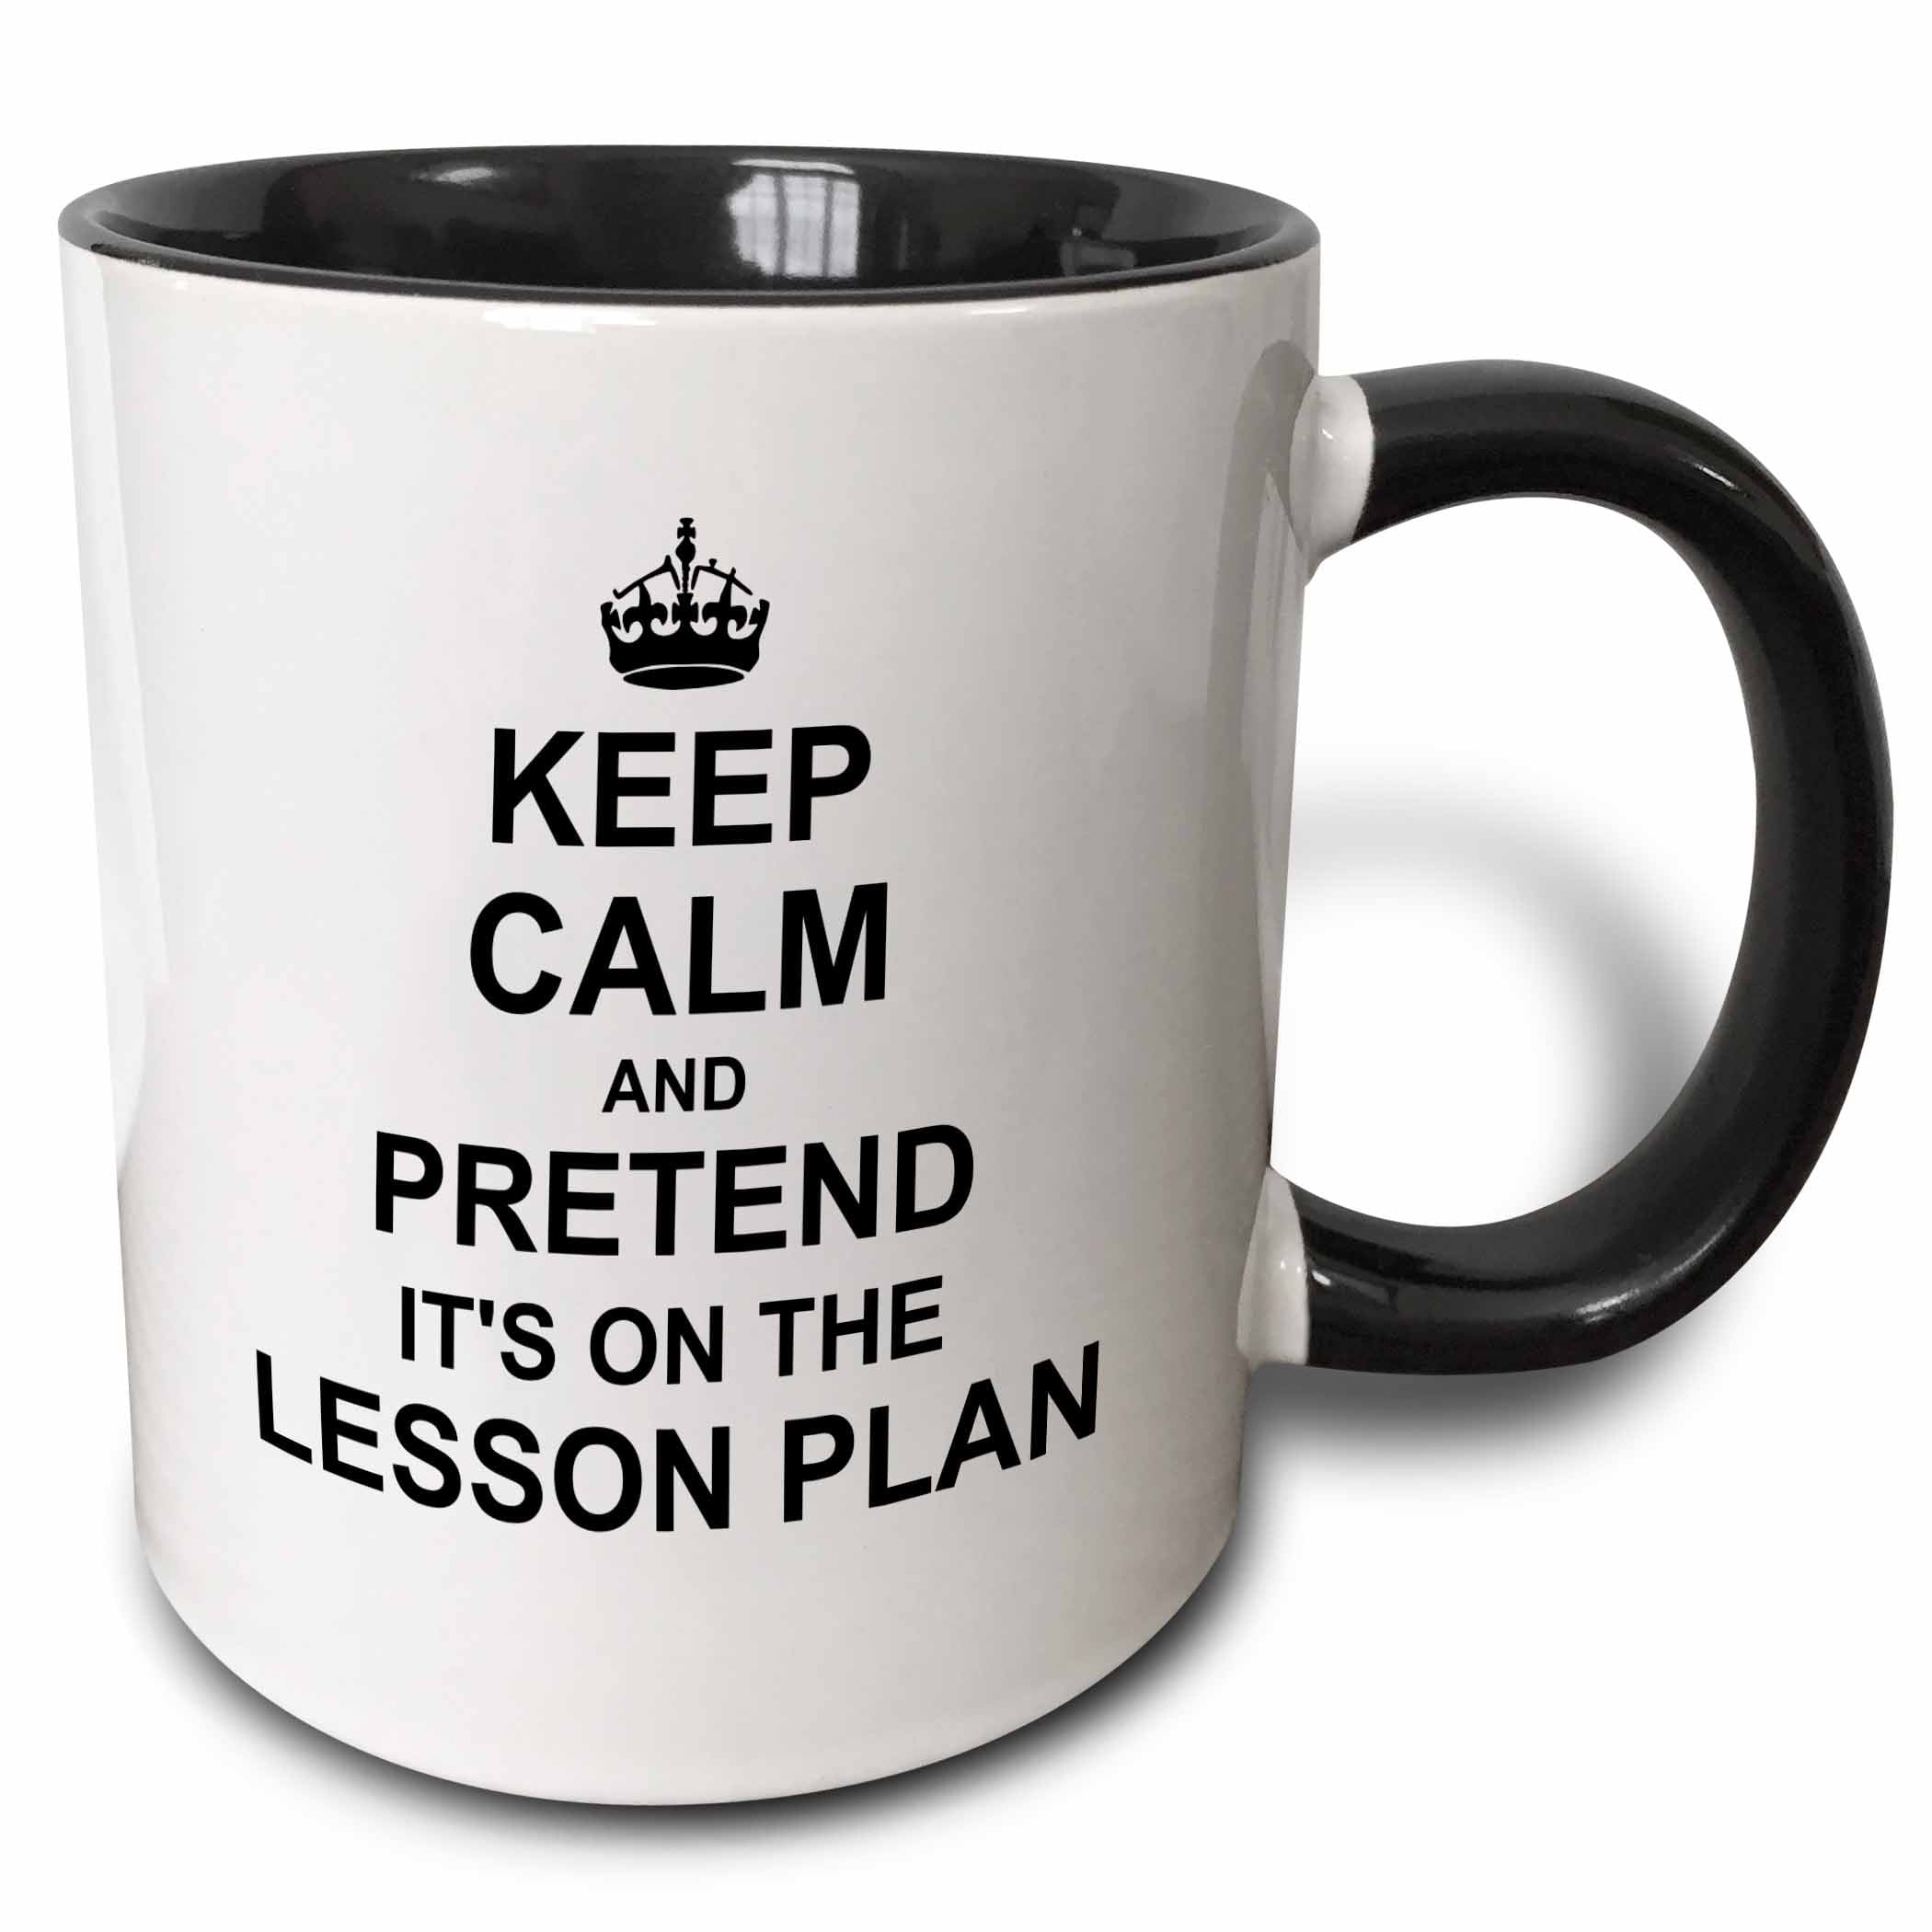 3dRose Keep Calm and Pretend its on the Lesson Plan funny teacher gifts teaching humor humorous fun, Two Tone... by 3dRose